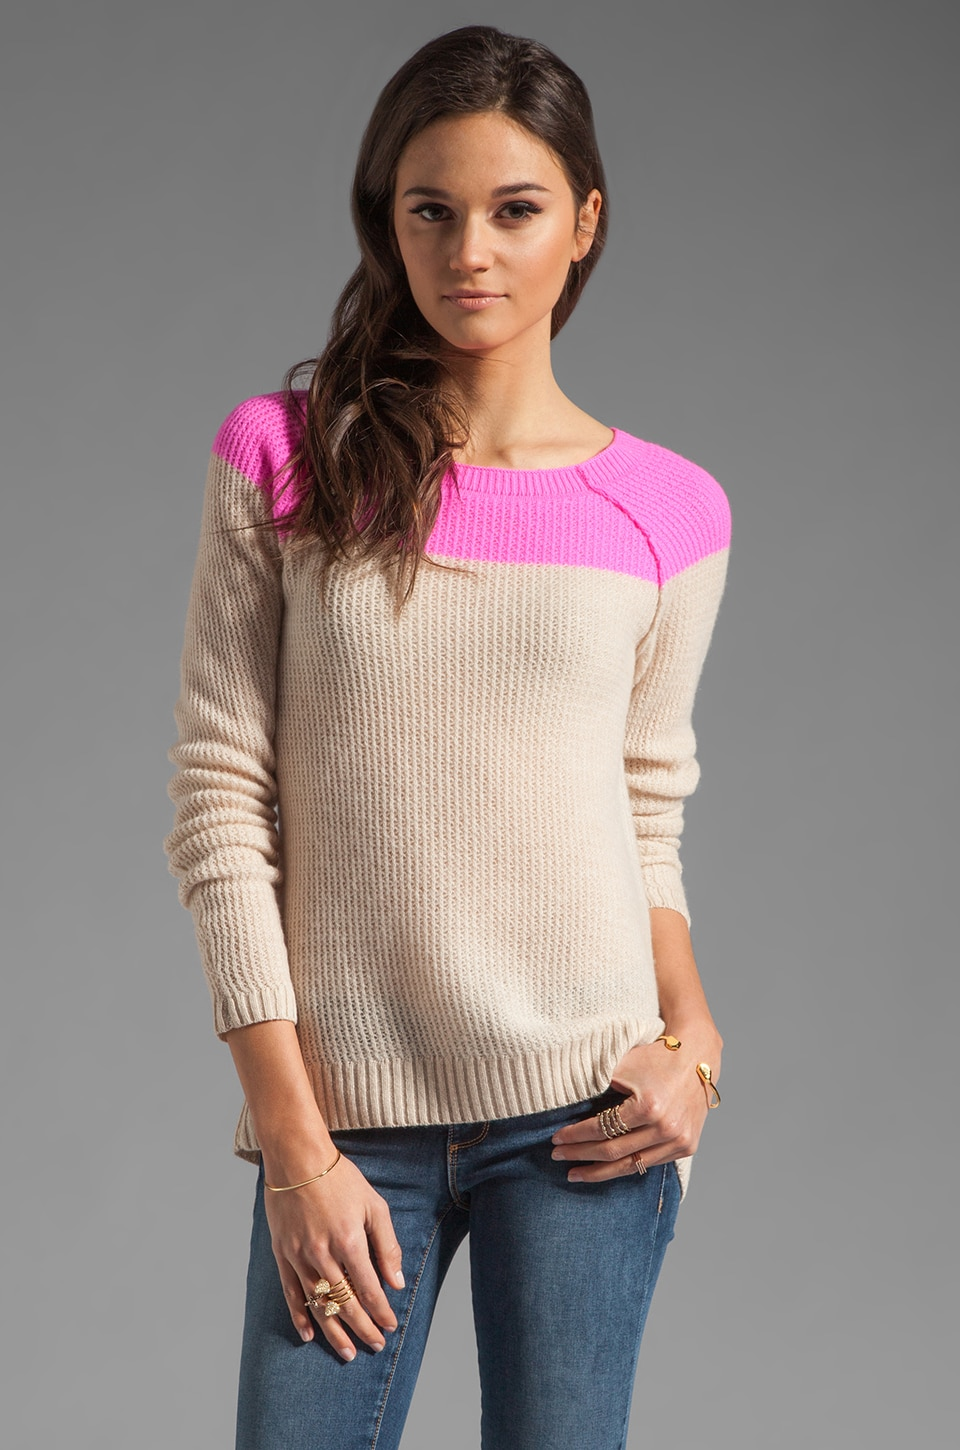 Rebecca Taylor Pullover in Pink and Oatmeal